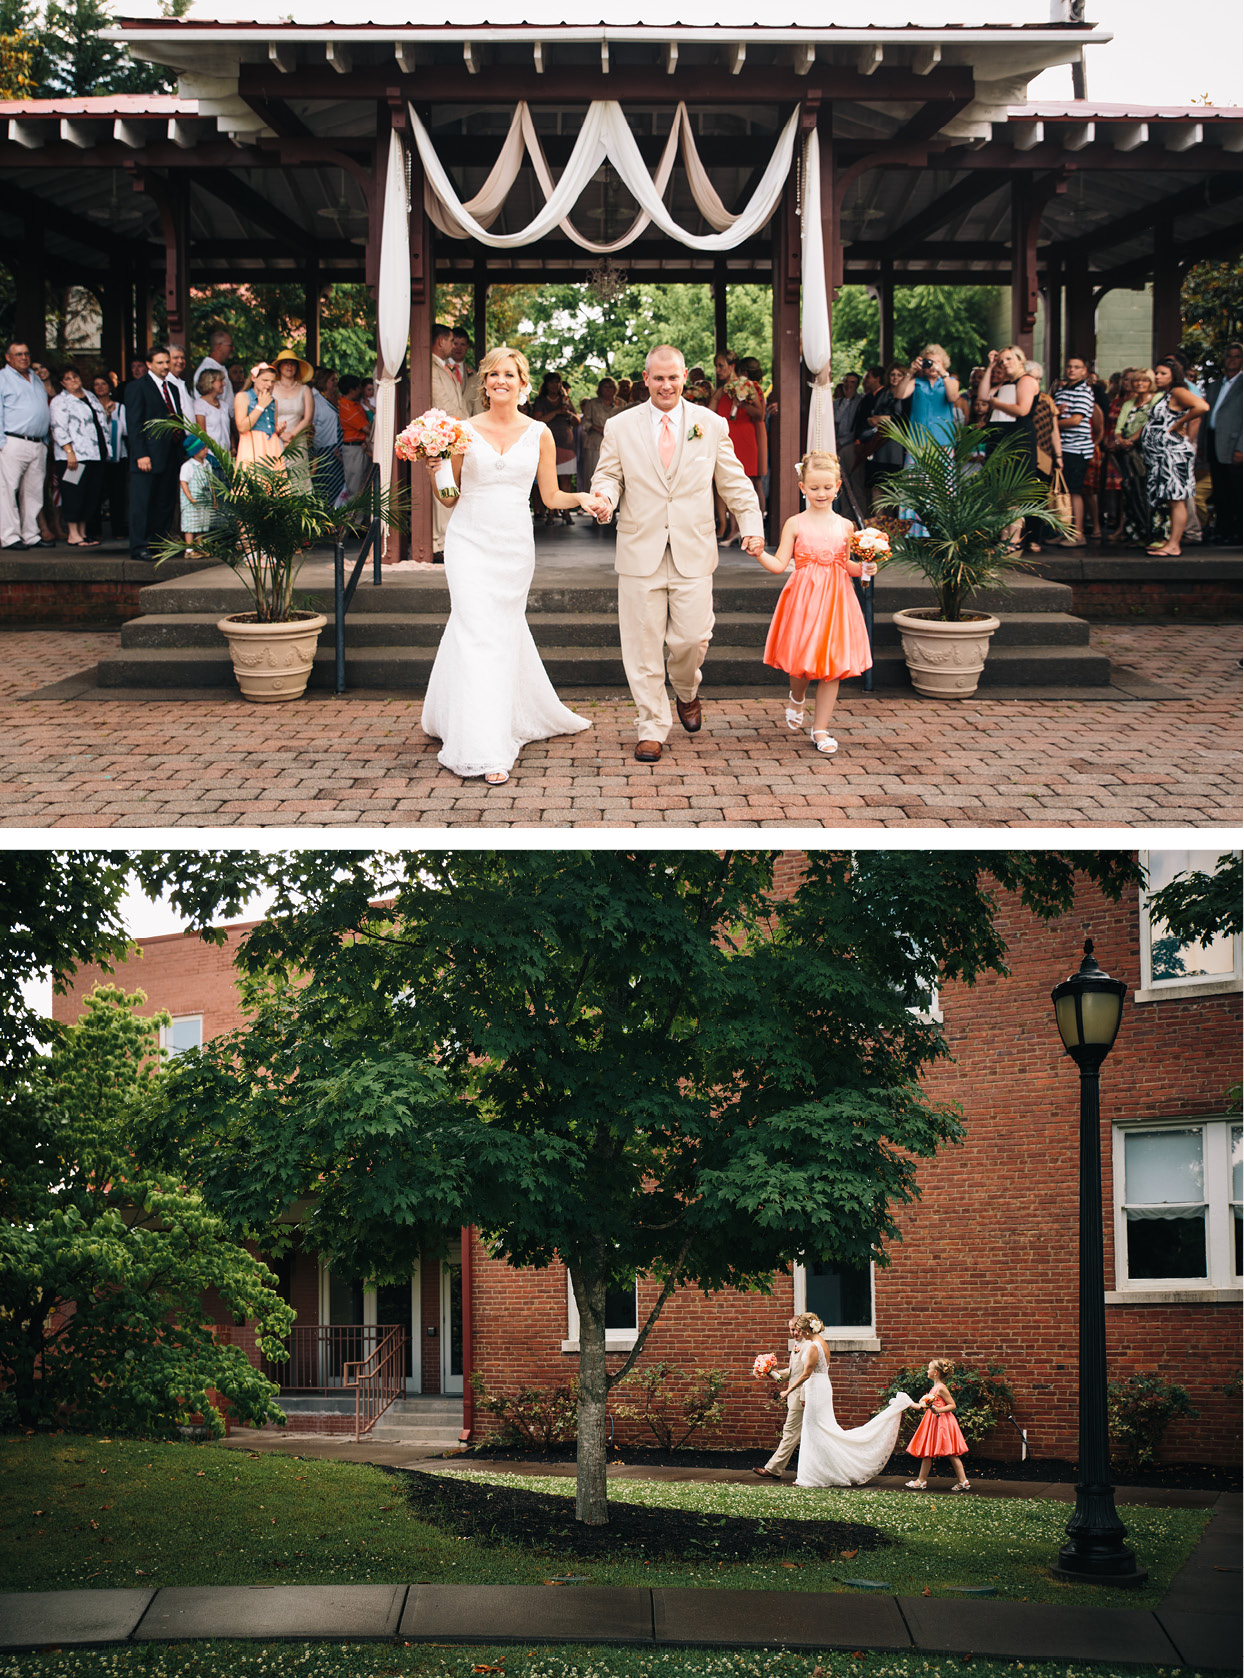 CK-Photo-Nashville-wedding-photography-bd8.jpg